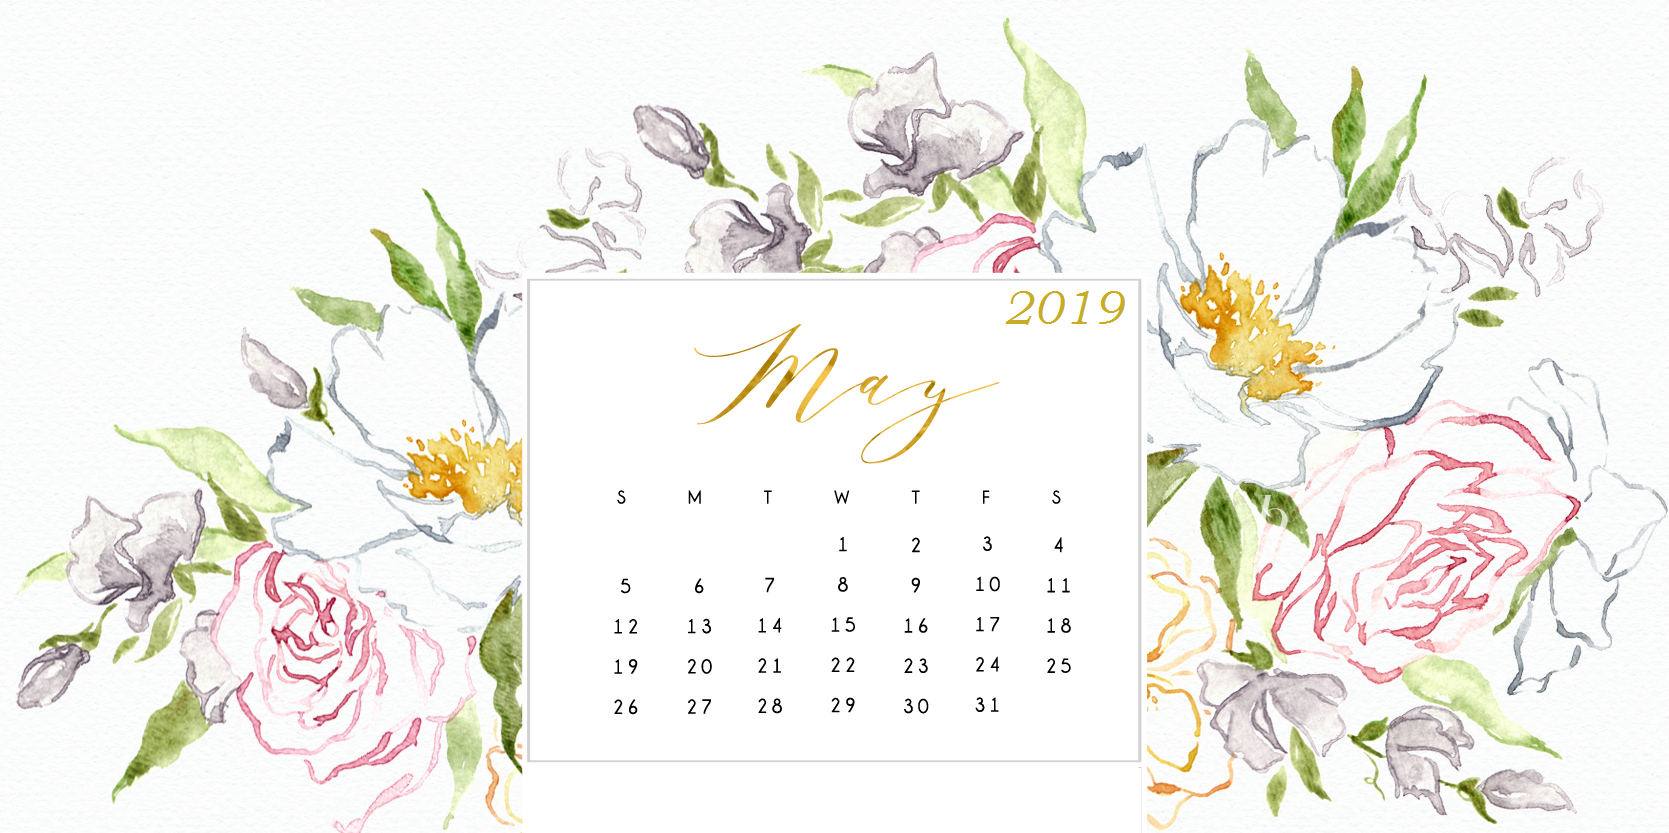 Cute May 2019 Desktop Calendar Wallpaper may may2019calendar 1669x833